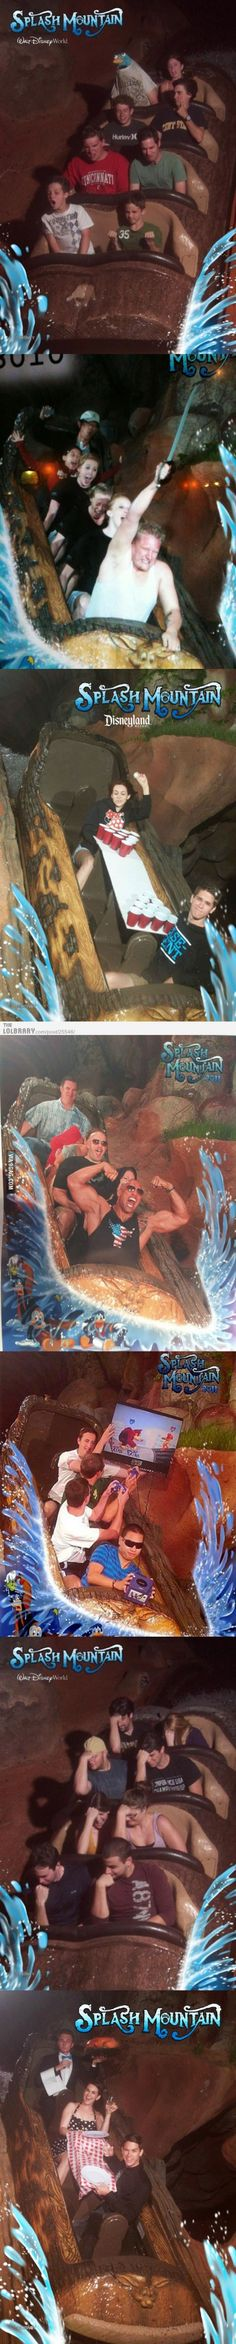 My favourite ride photos from Splash Mountain